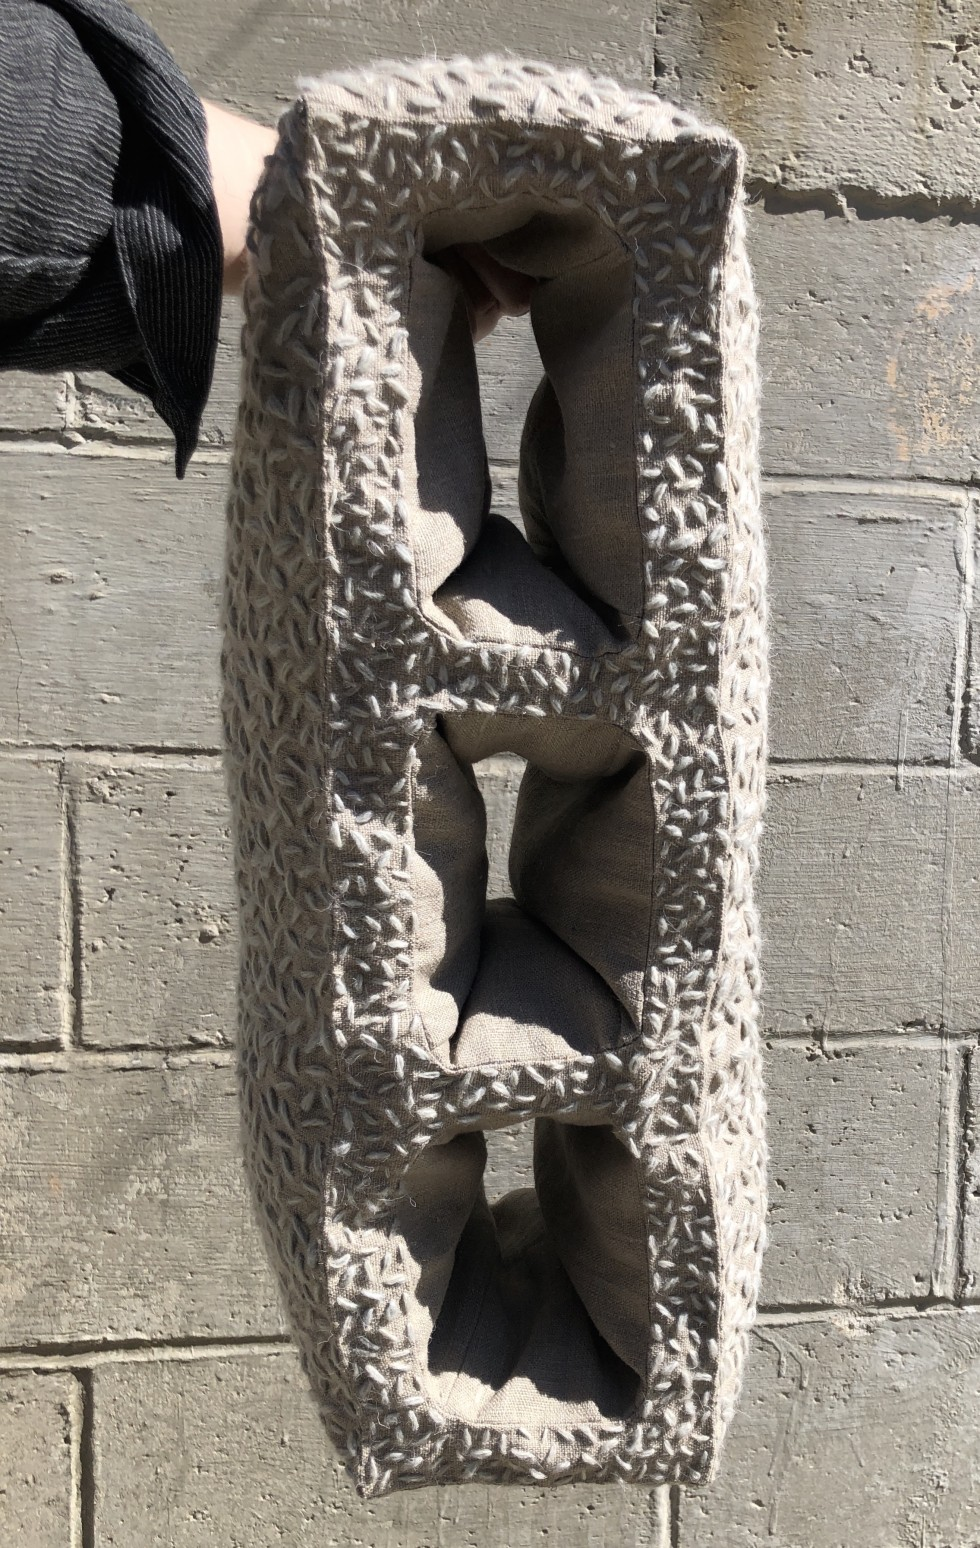 Soft Cinder block is a soft sculpture of a cinder block. It has been edited to be elongated, having three openings instead of one. The block is made of linen and stitched with a thick wool yarn in an irregular pattern to mimic the rough texture of cement.